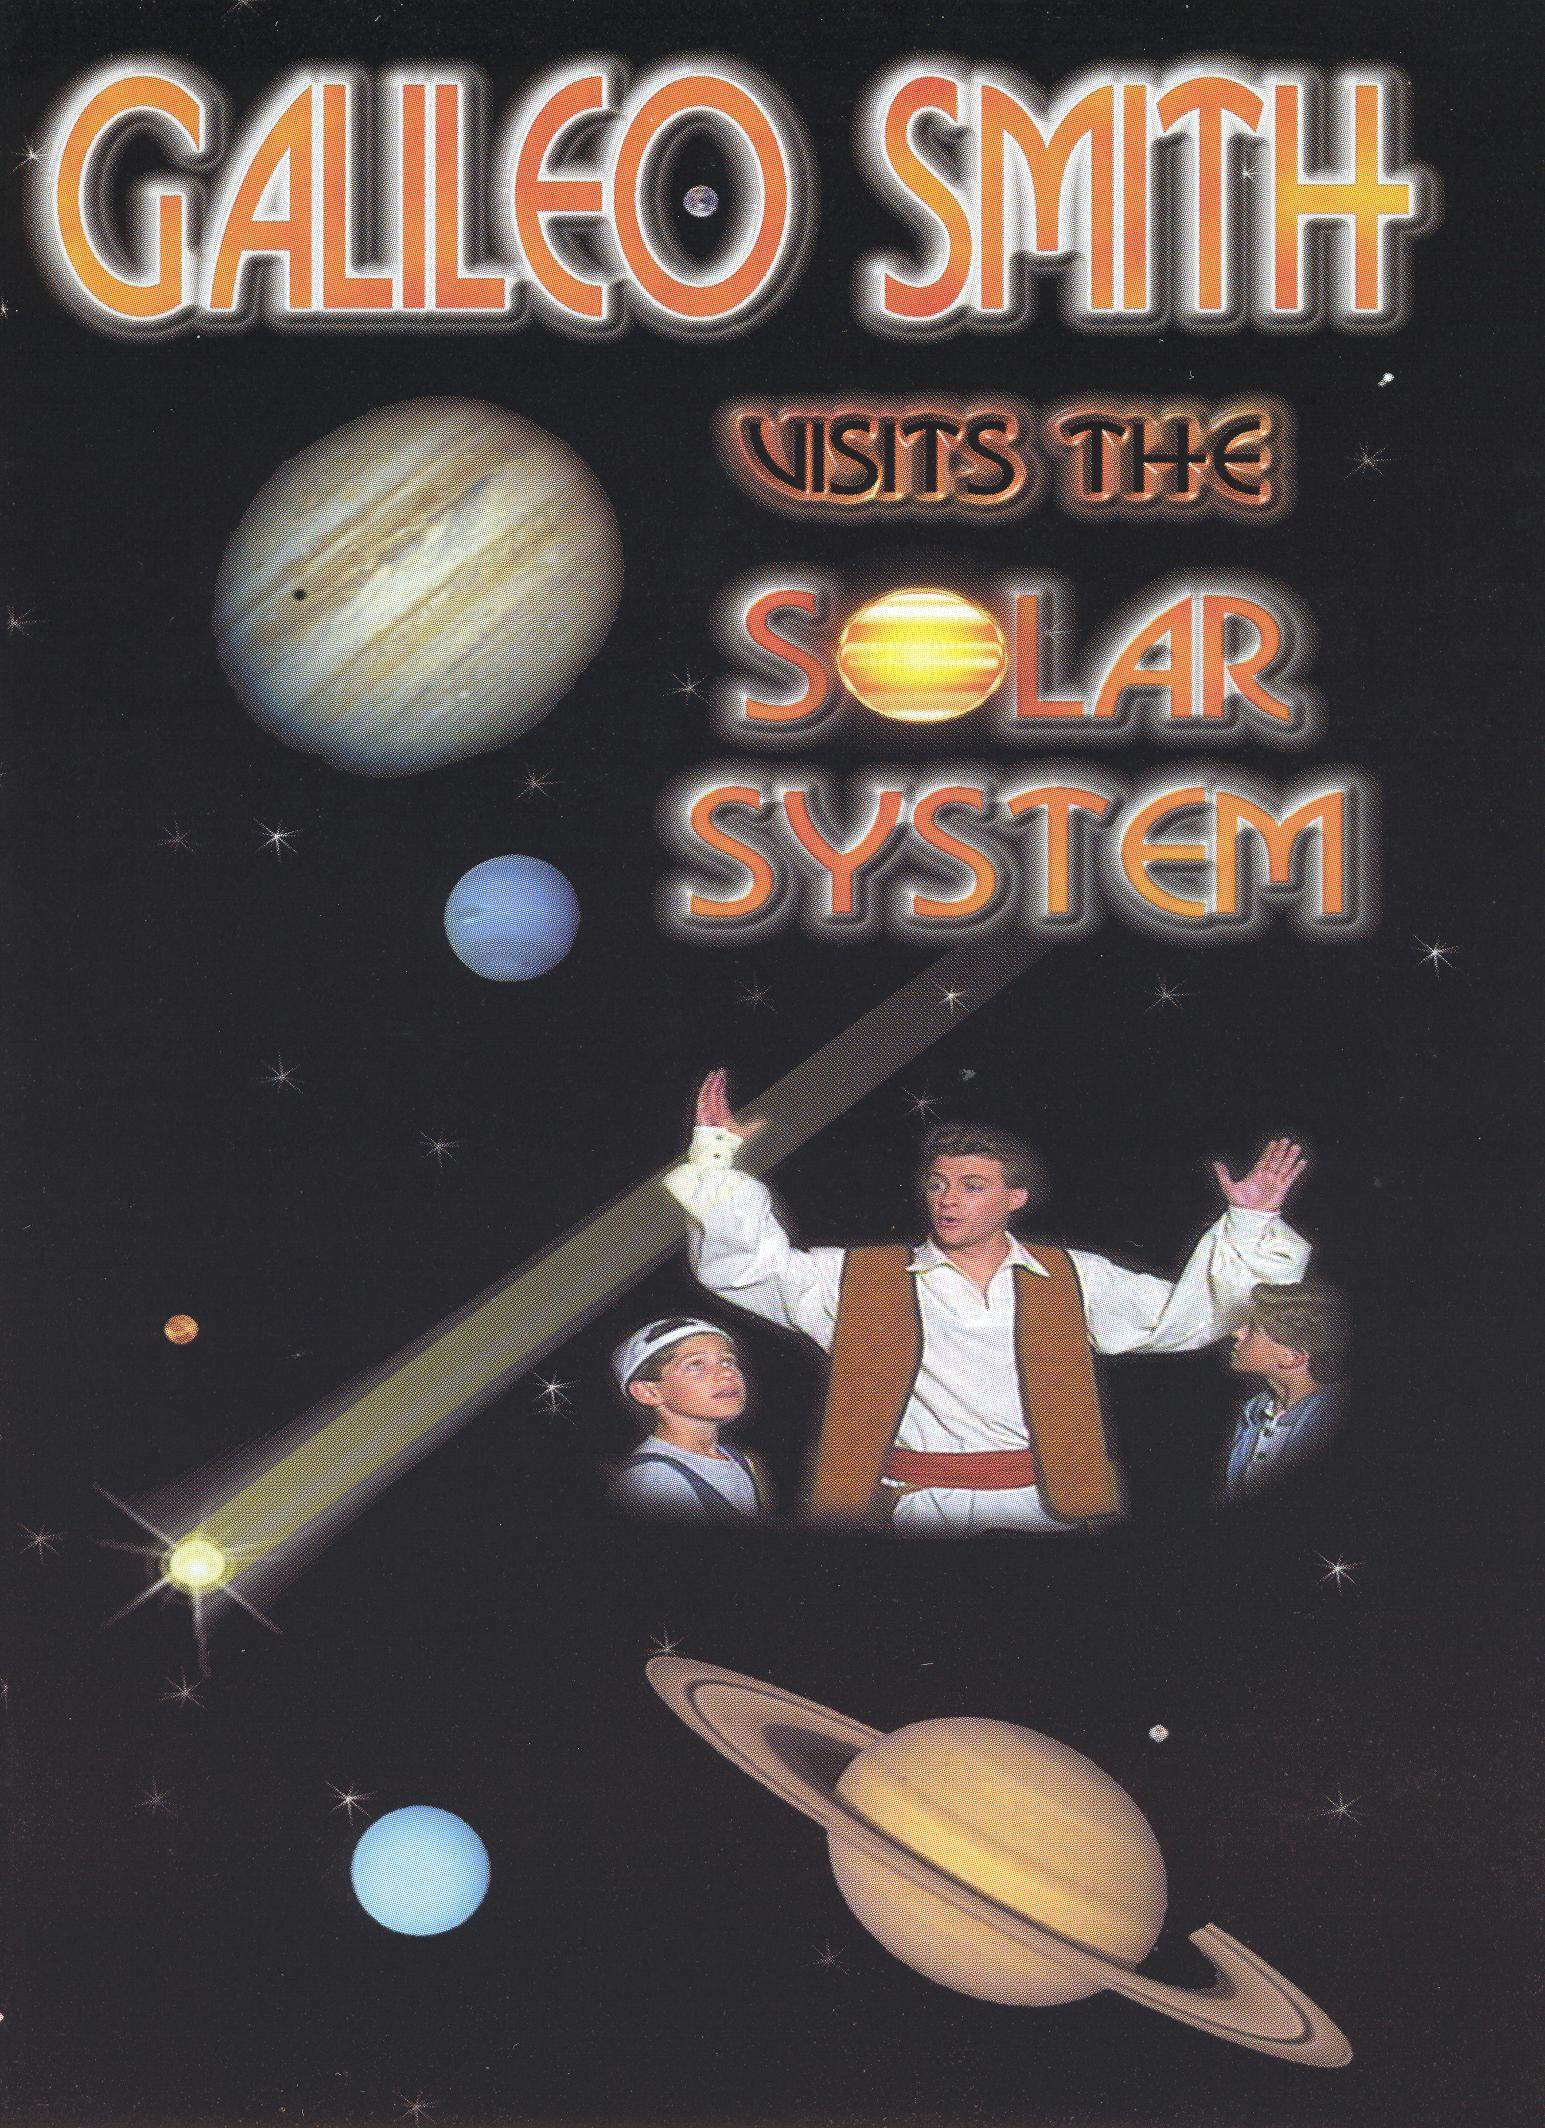 Galileo Smith Visits the Solar System